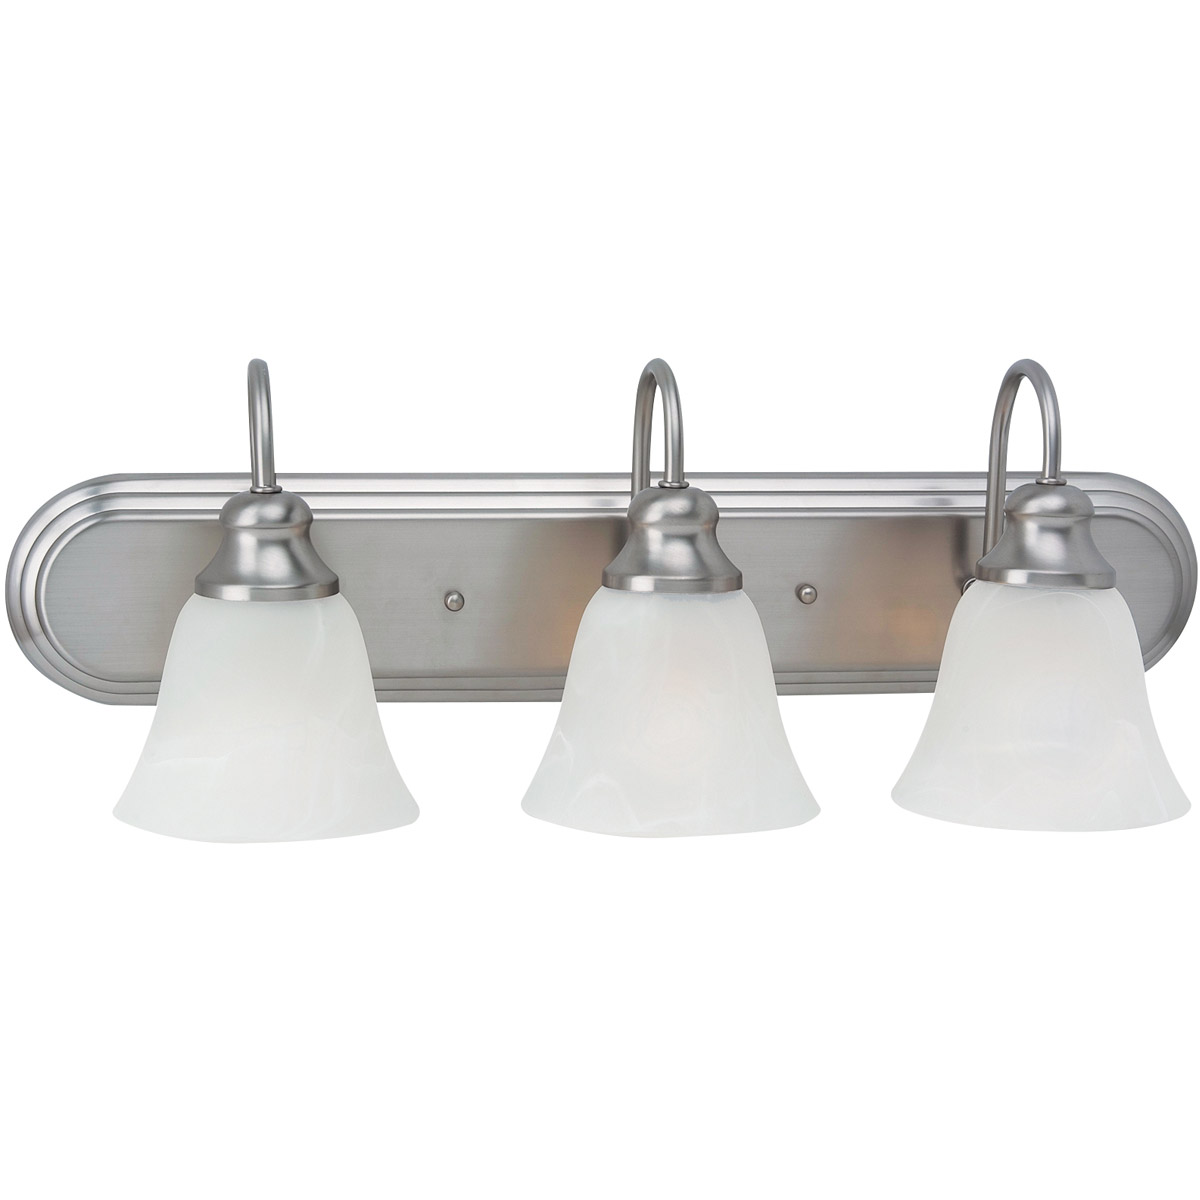 Sea Gull Lighting Windgate 3 Light Bath Vanity in Brushed Nickel 44941-962